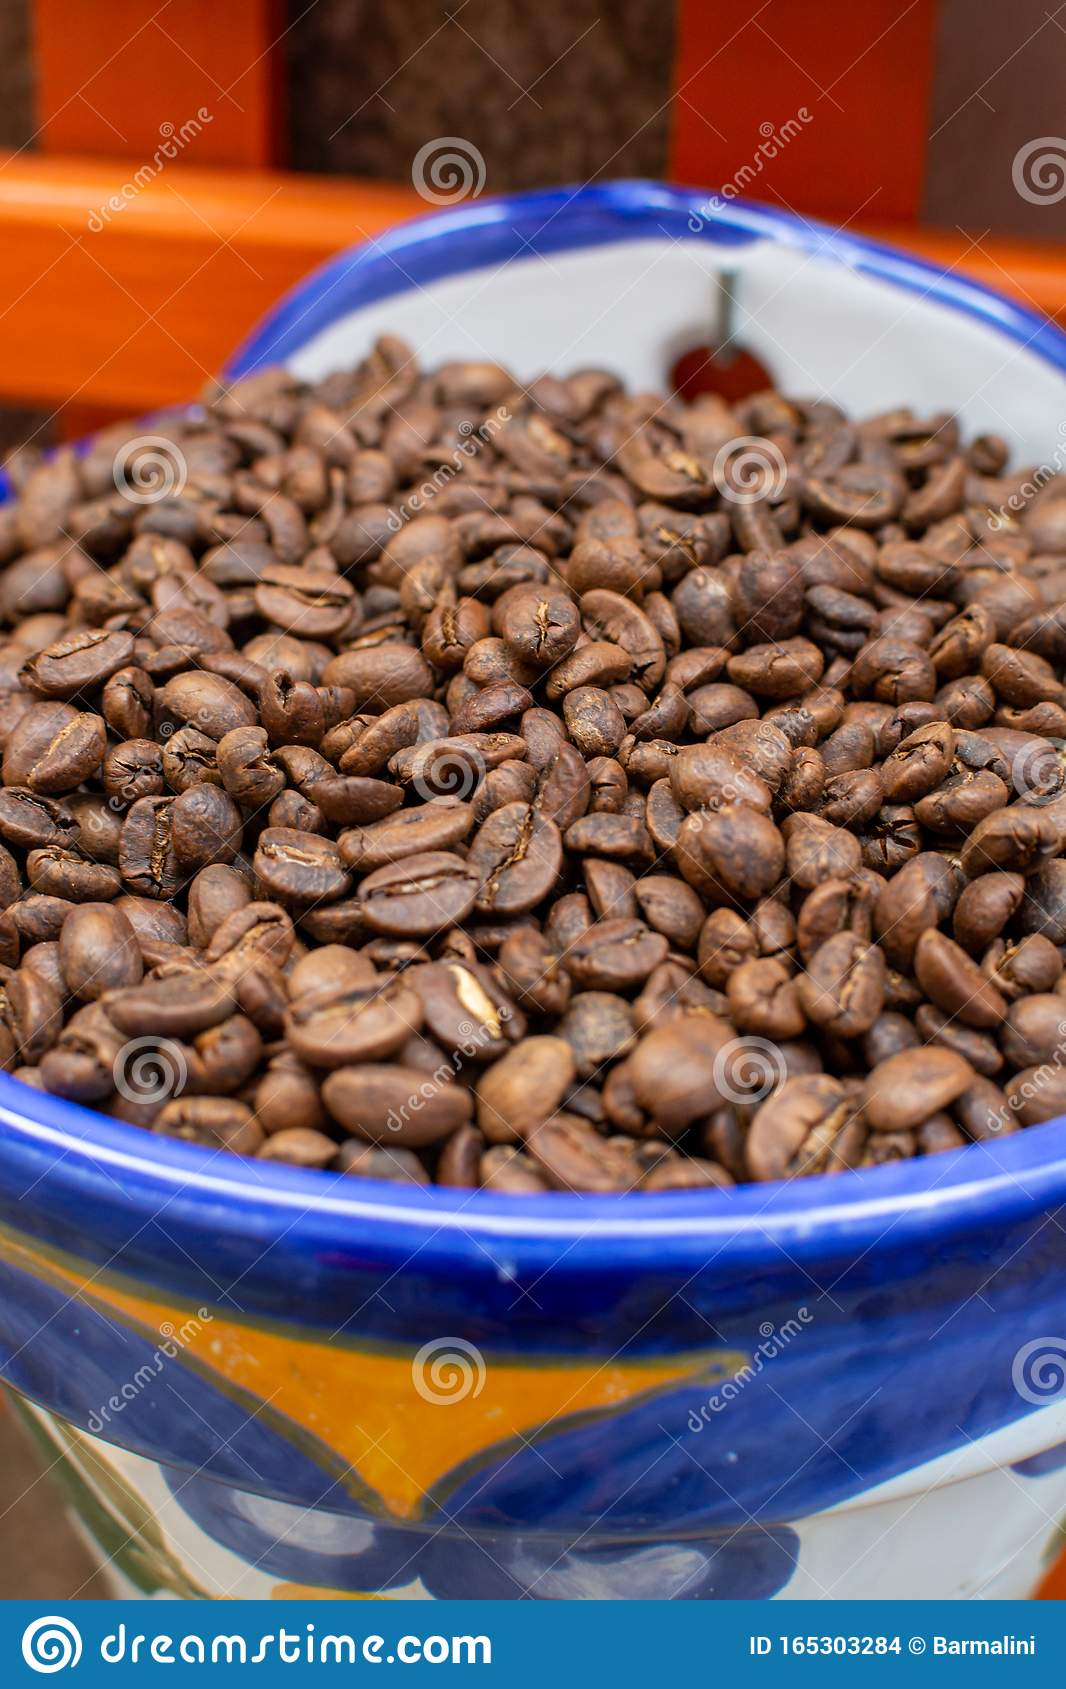 Roasted Decaf Coffee Beans Without Caffeine Stock Photo ...